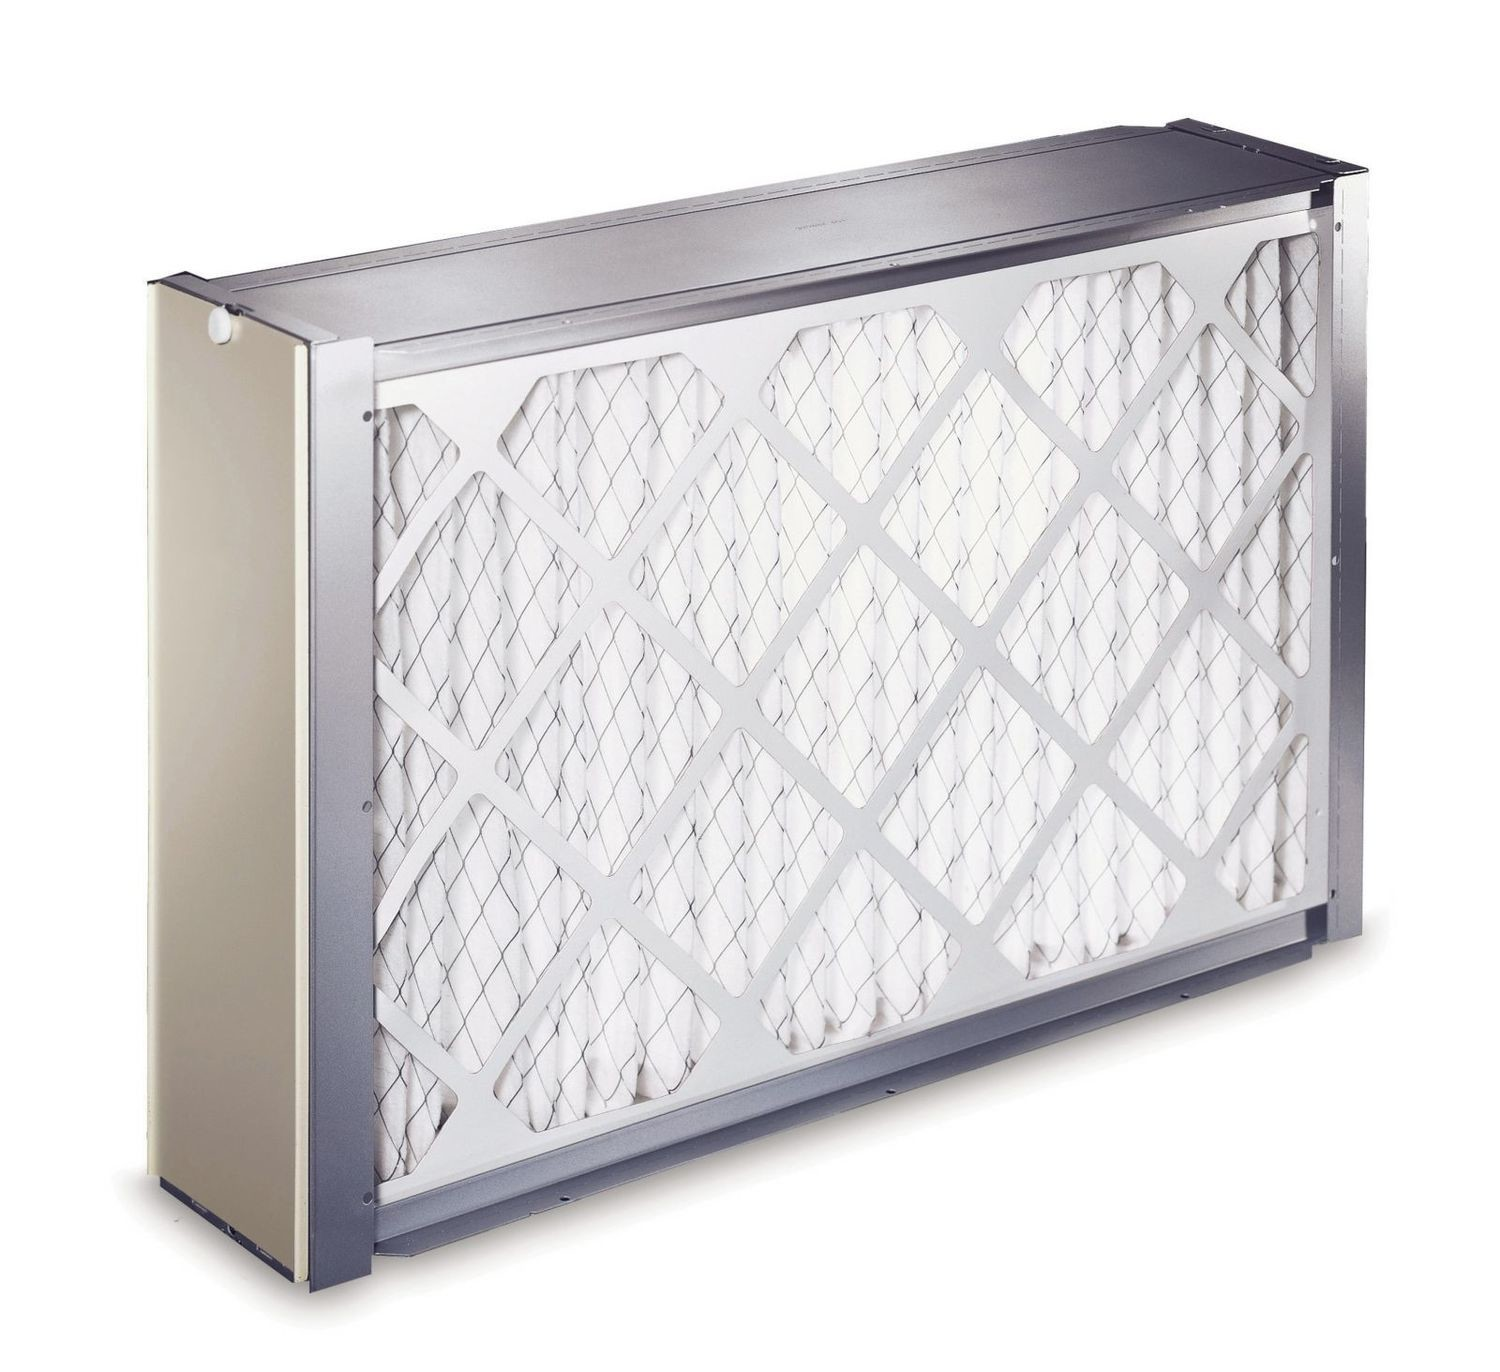 """FILCABXL0020 20"""" x 25"""" Mechanical Air Cleaner Filter Cabinet - Filters not included"""